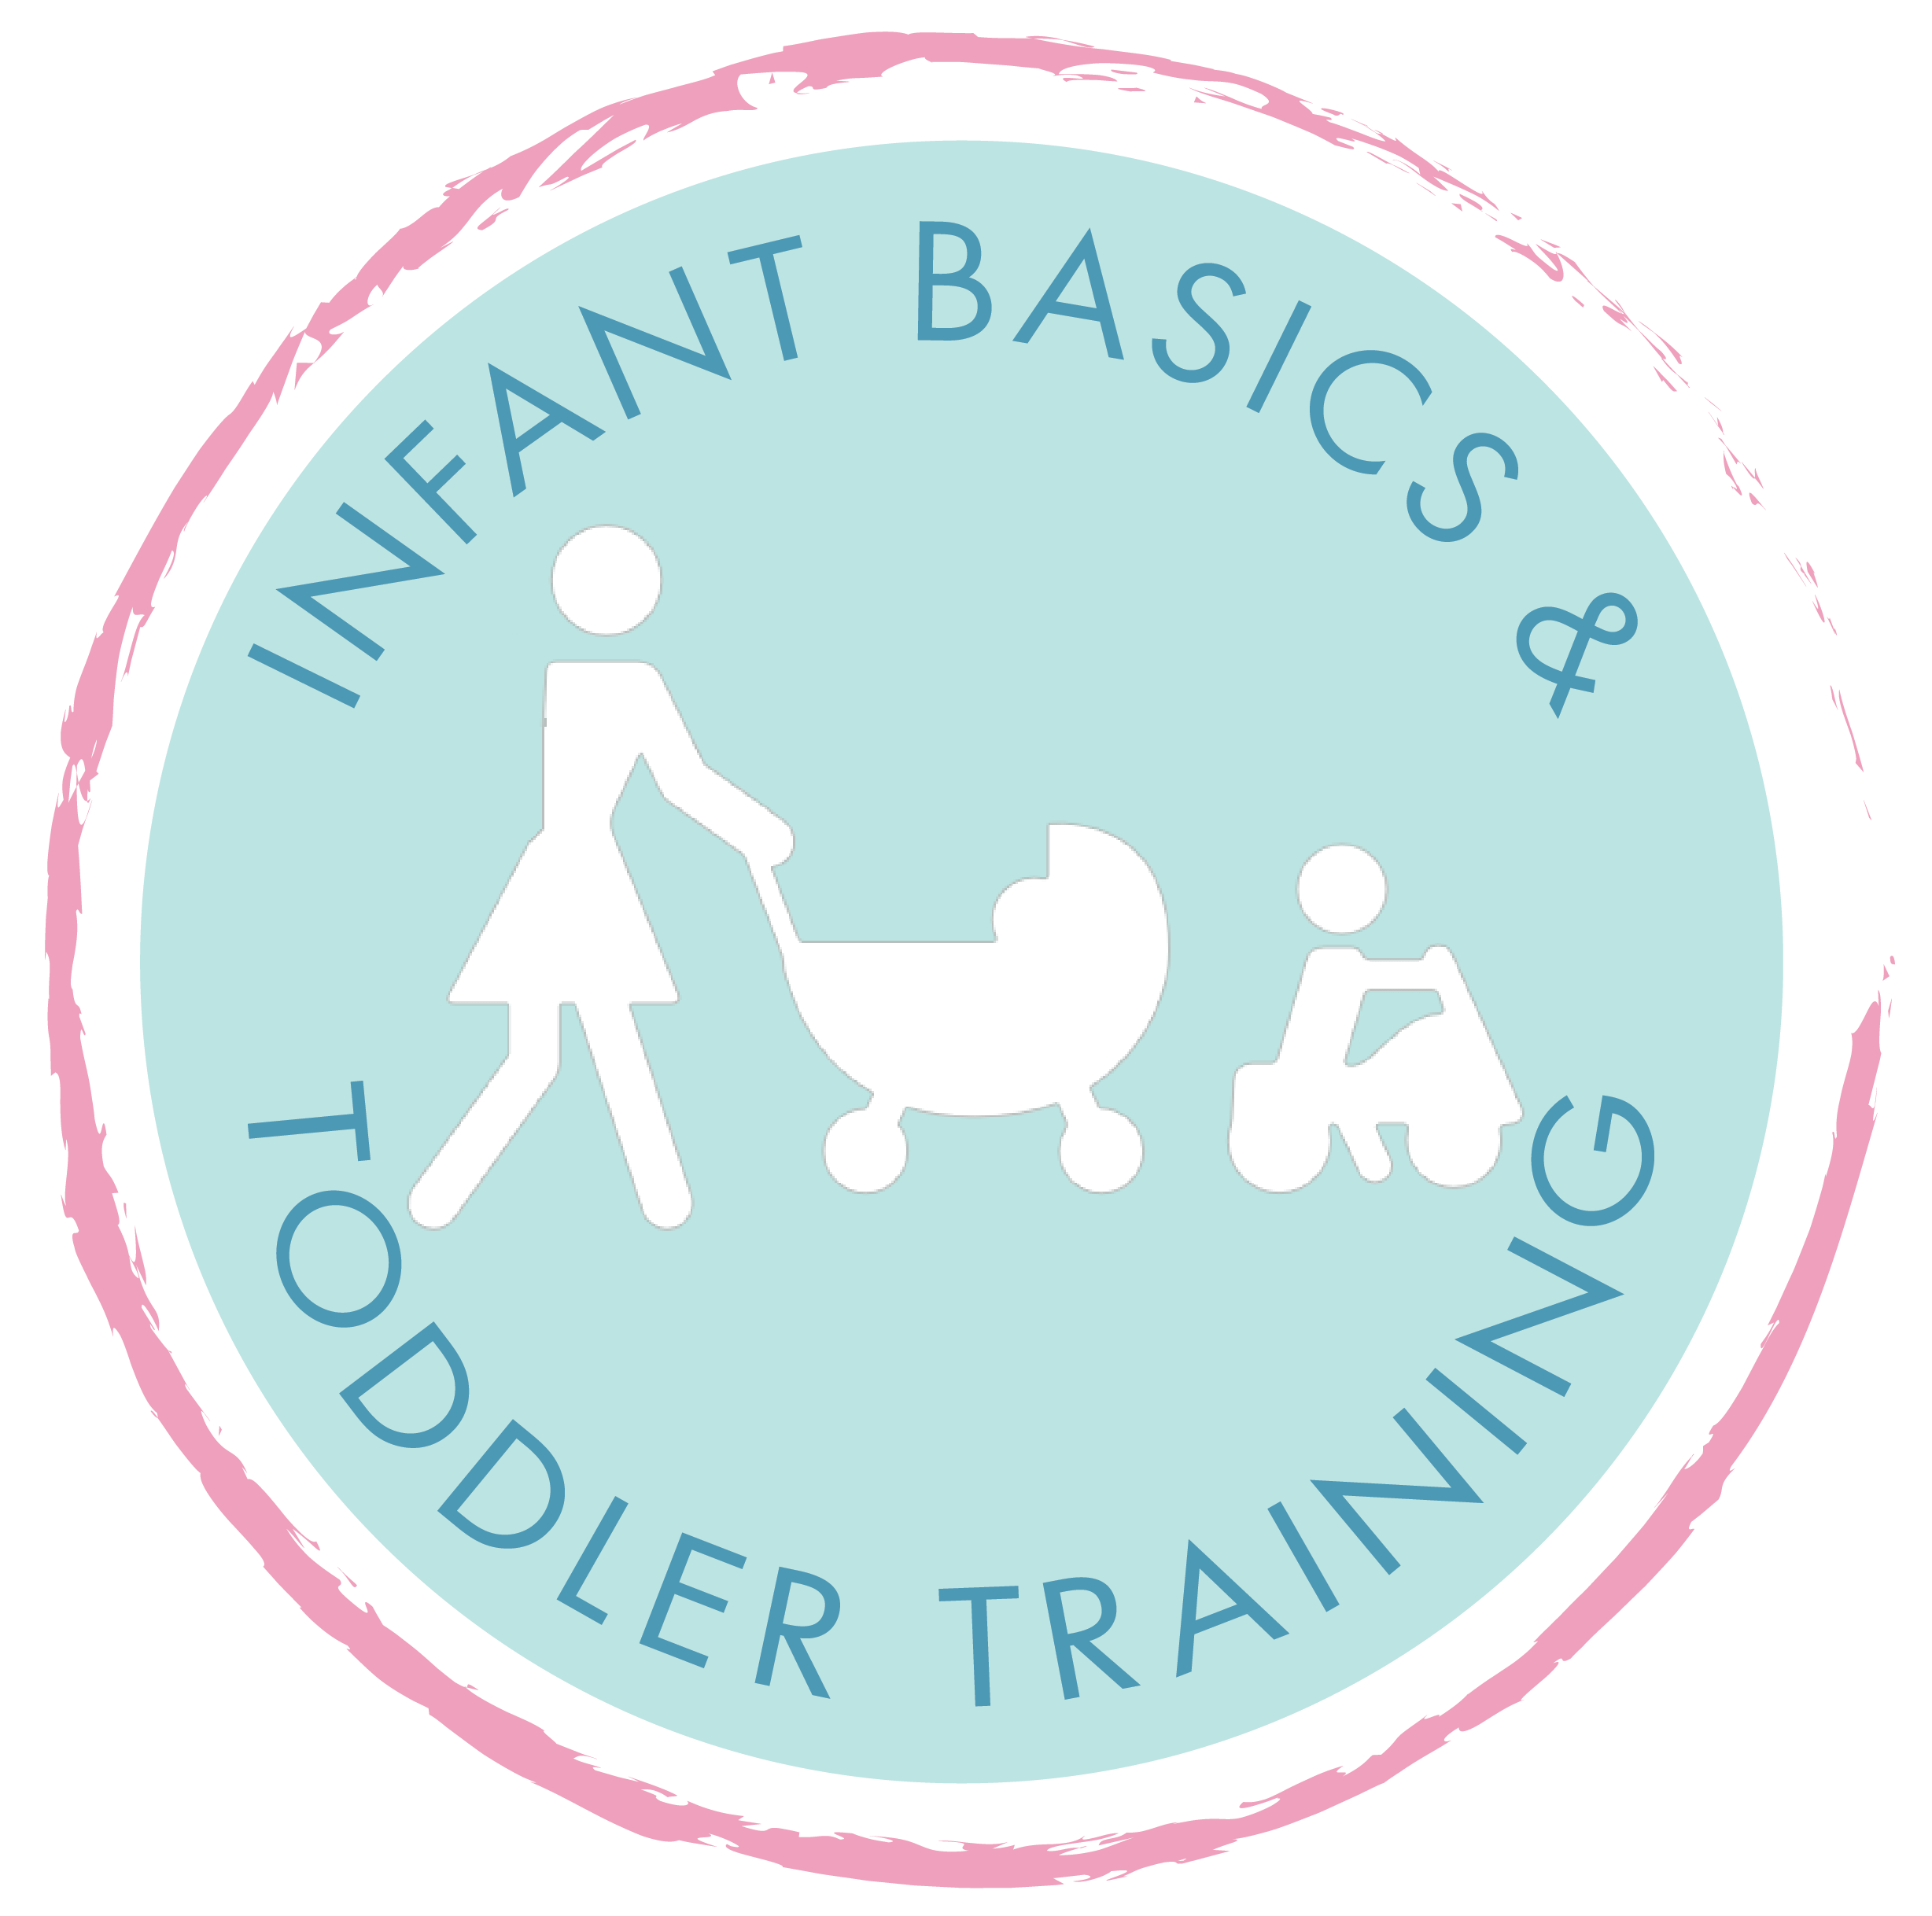 Infant Basics and Toddler Training